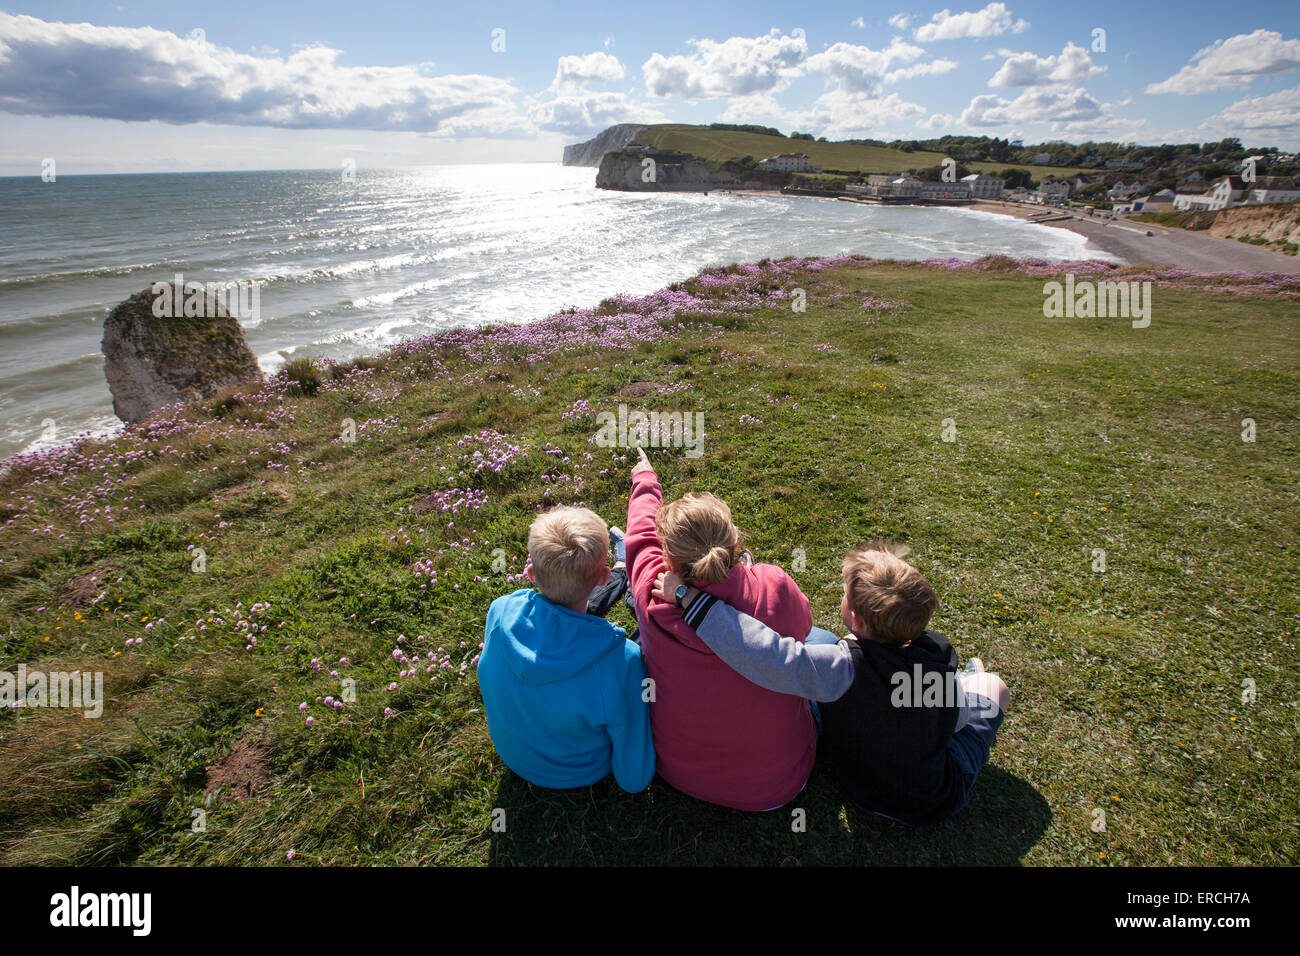 A Family enjoy the view of Freshwater Bay on the Isle of Wight - Stock Image